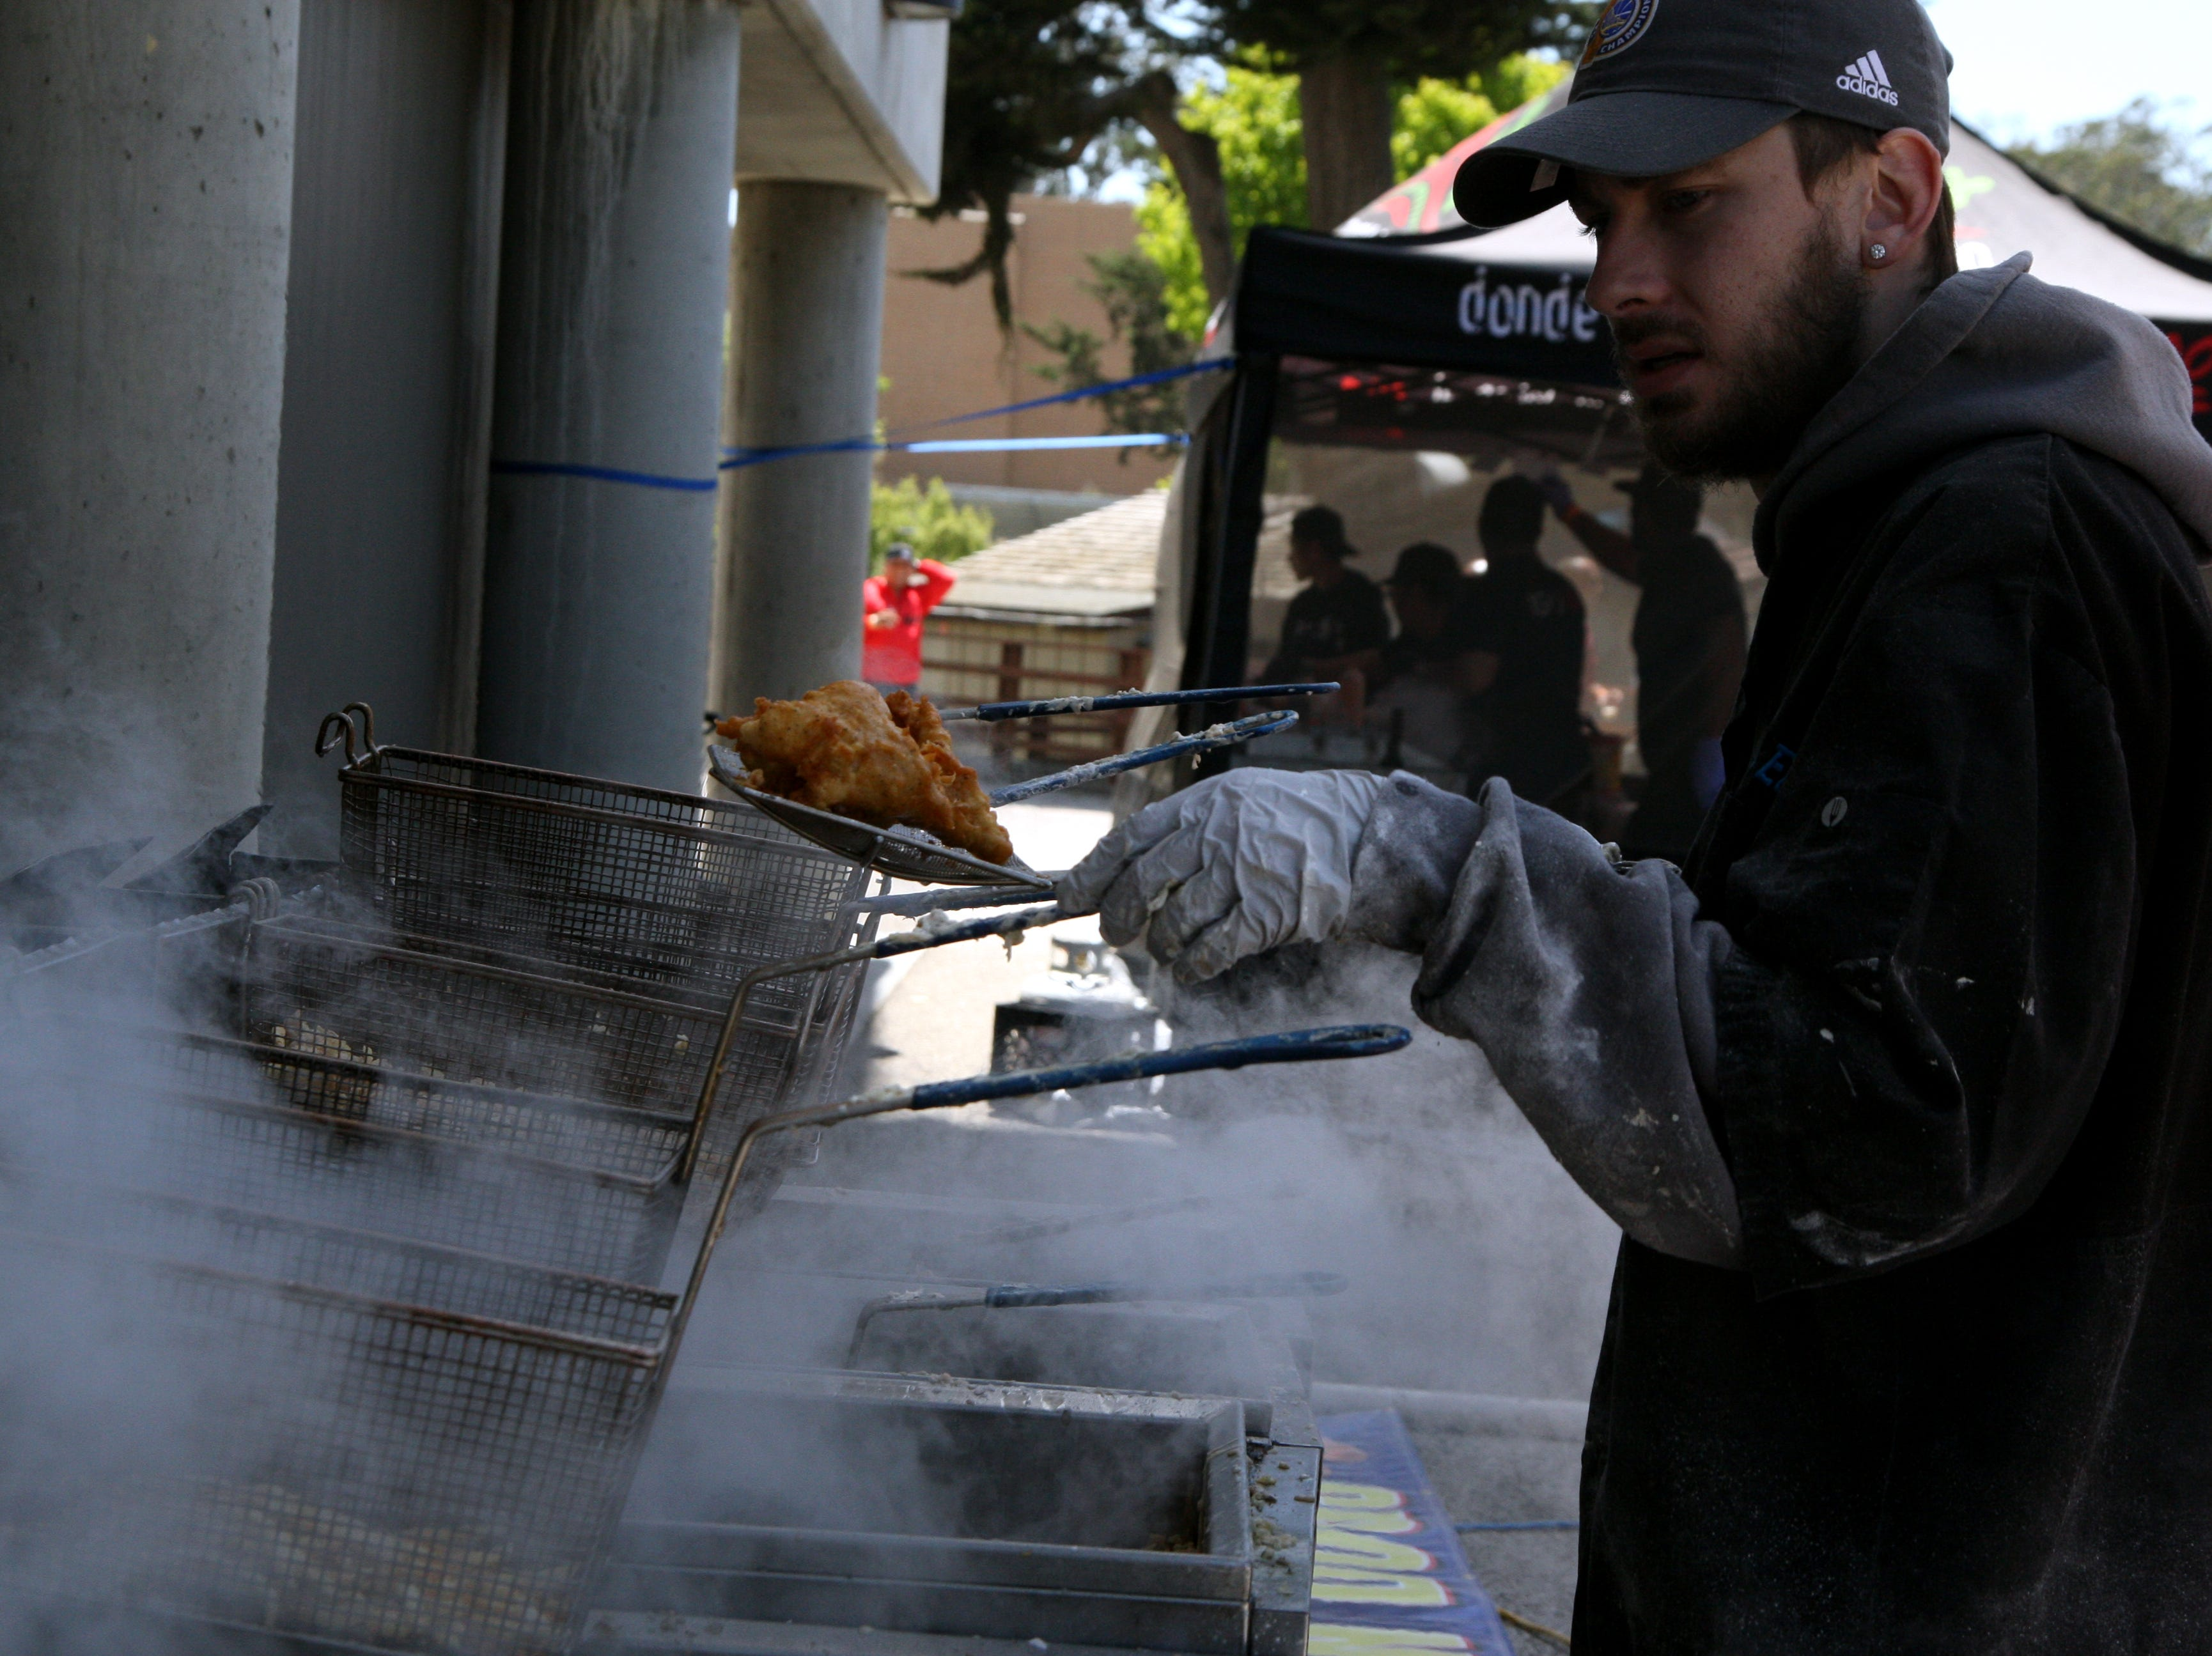 A fry cook pulls fried fish out of the fryolator as smoke billows from the hot grease. May 4, 2019.